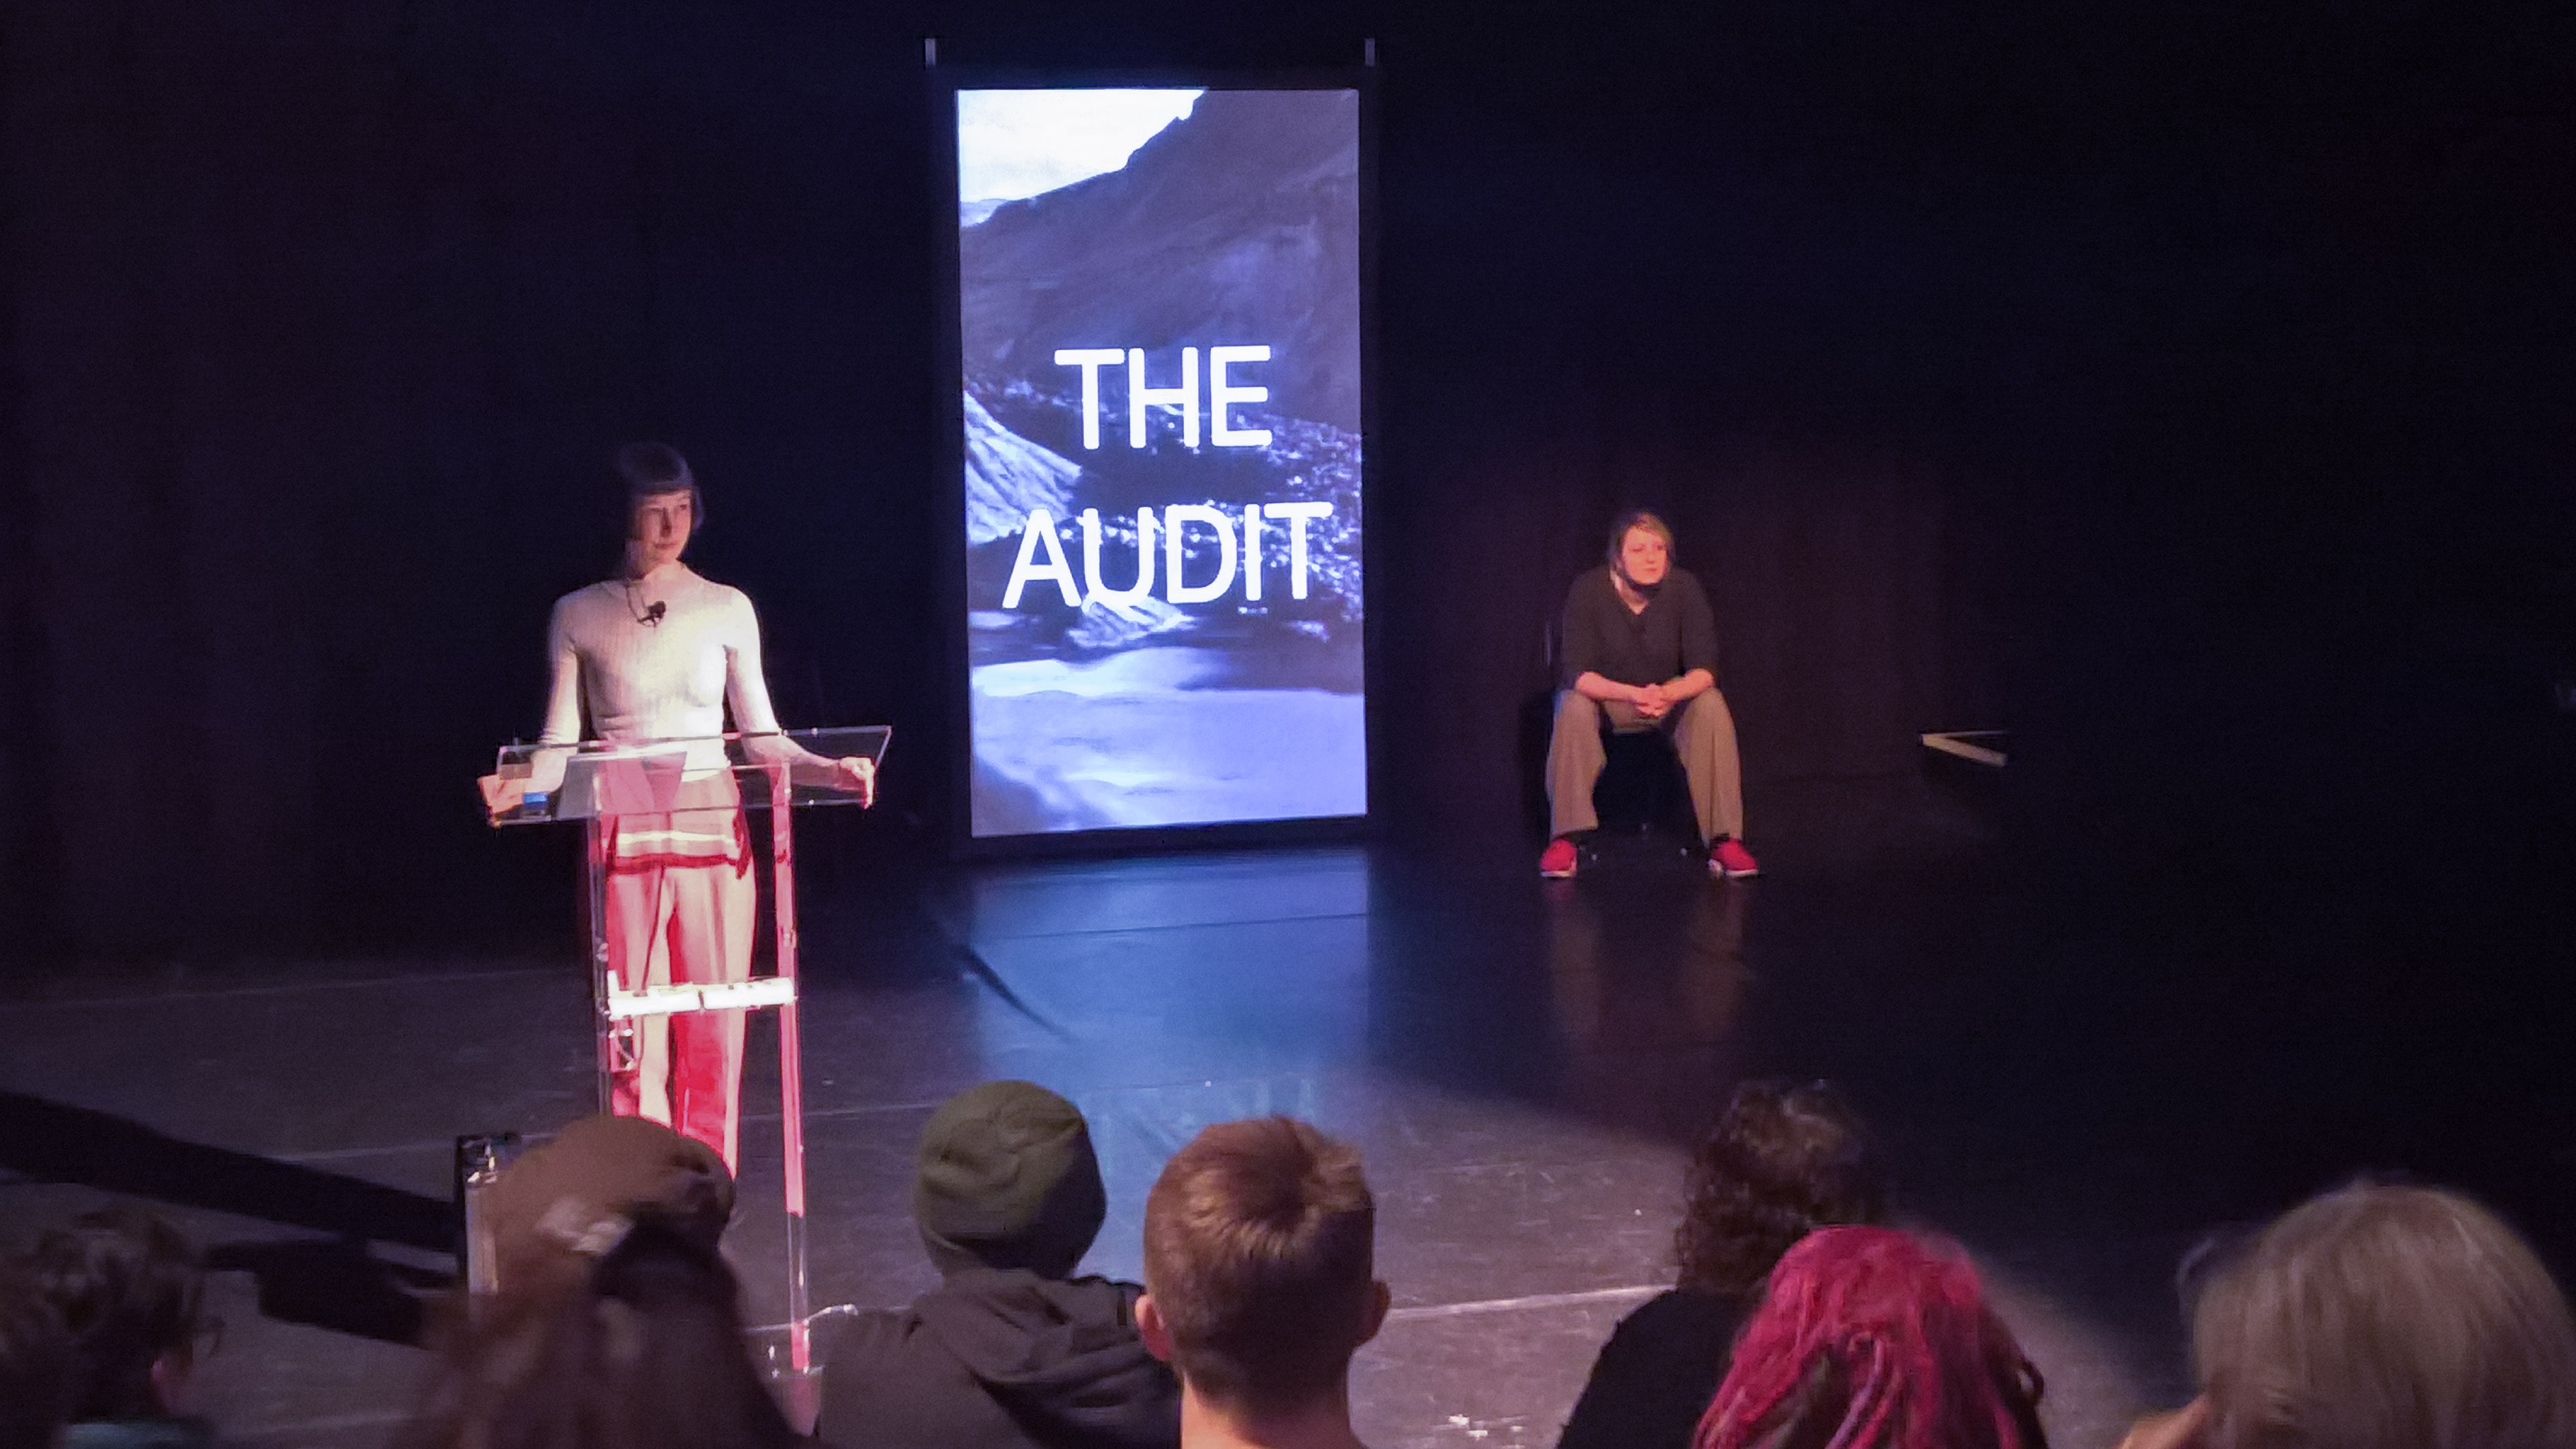 REVIEW: The Audit by Proto-type Theatre (at The Lowry, Salford)